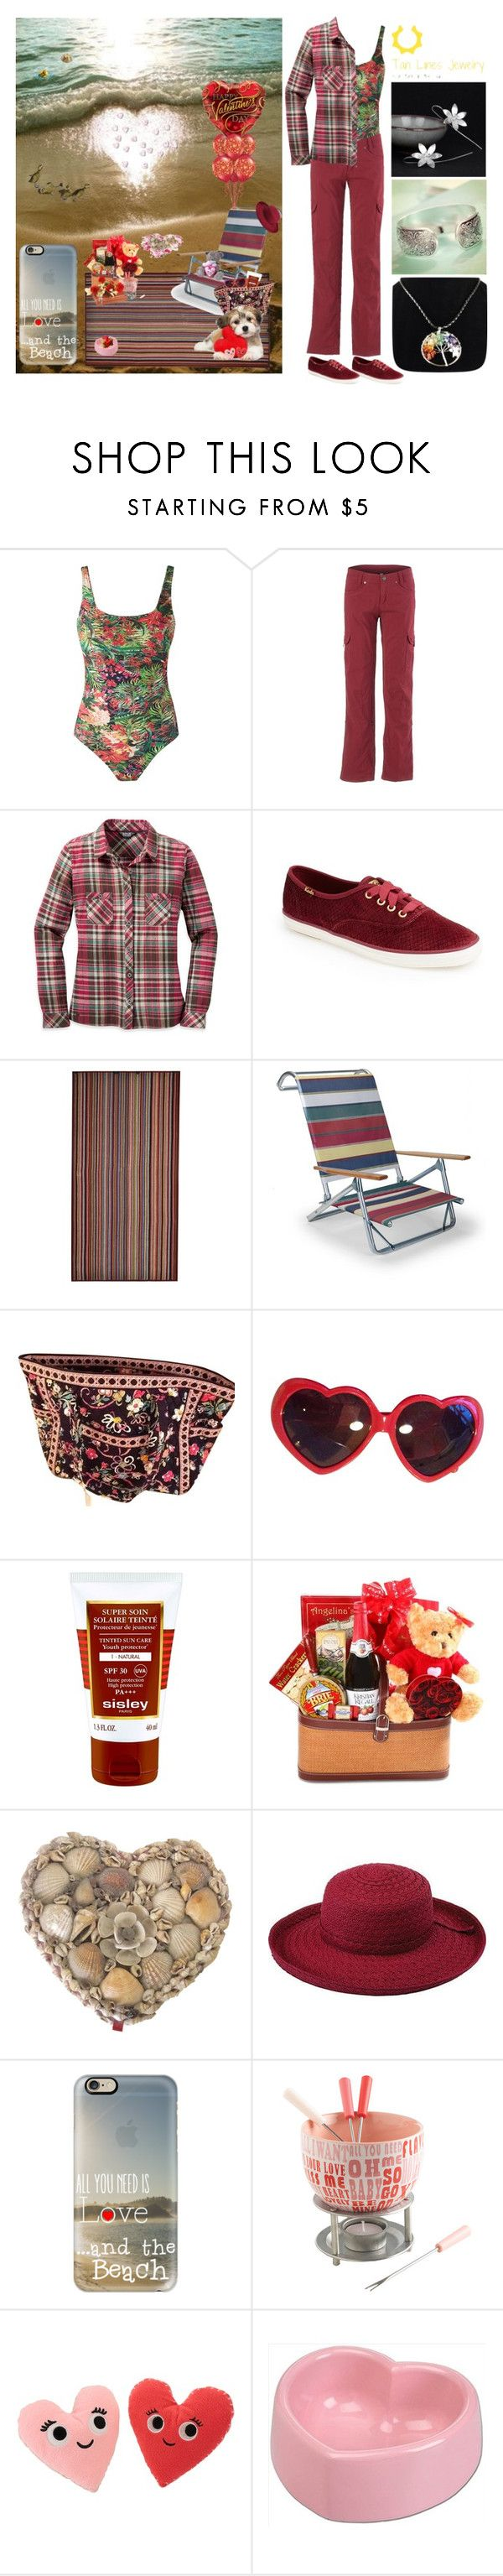 """A Beachy Valentine with Tan Line Jewelry"" by pinky-dee ❤ liked on Polyvore featuring Keen Footwear, Lygia & Nanny, Kuhl, Keds, Paul Smith, Telescope Casual, Vera Bradley, Moschino, Sisley and PANTROPIC"